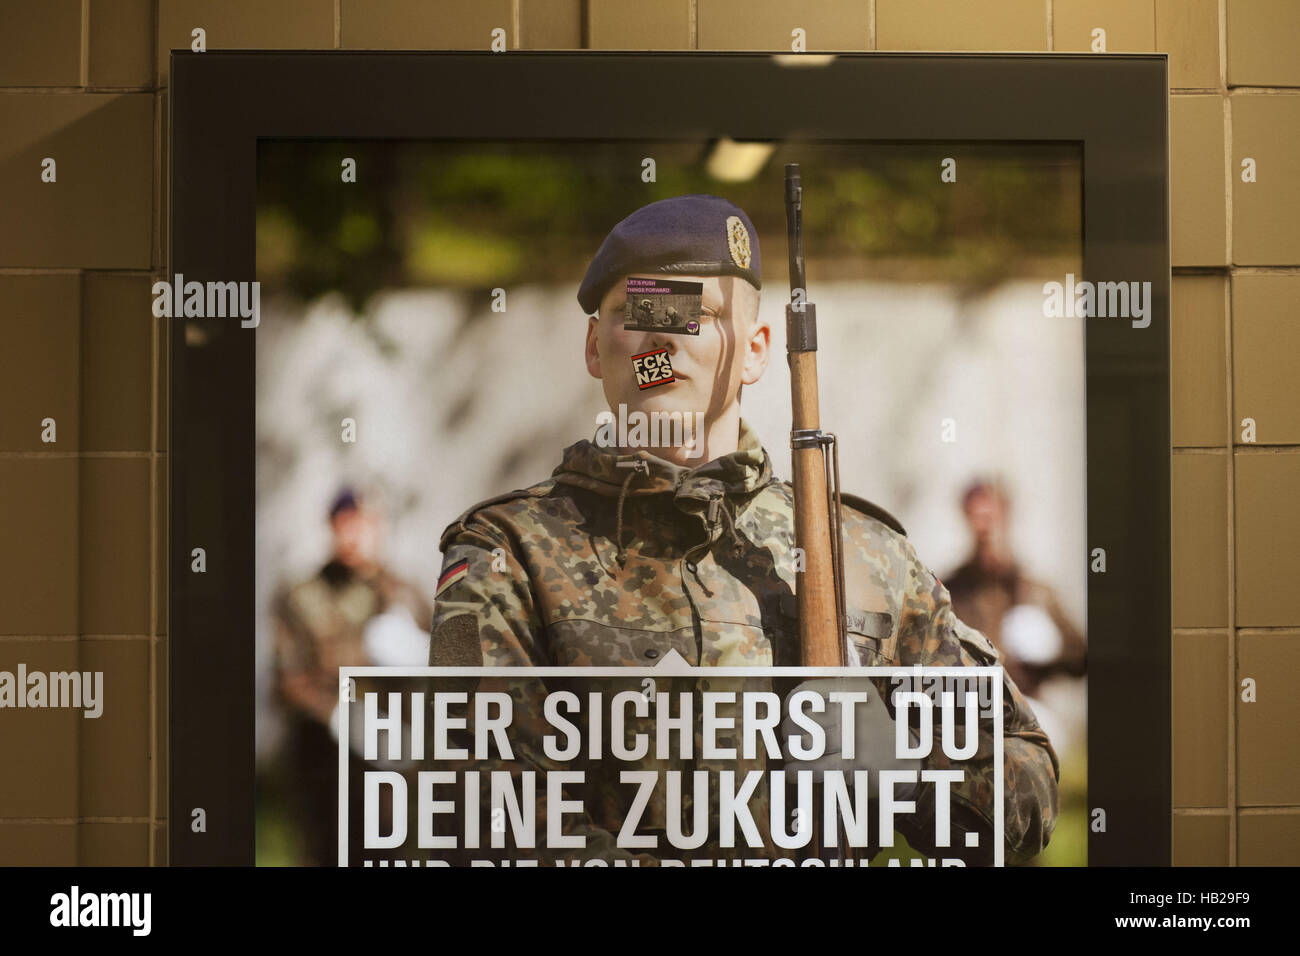 Berlin, Germany. 4th Dec, 2016. Stickers cover the face of a German soldier portrayed on a military draft poster, - Stock Image